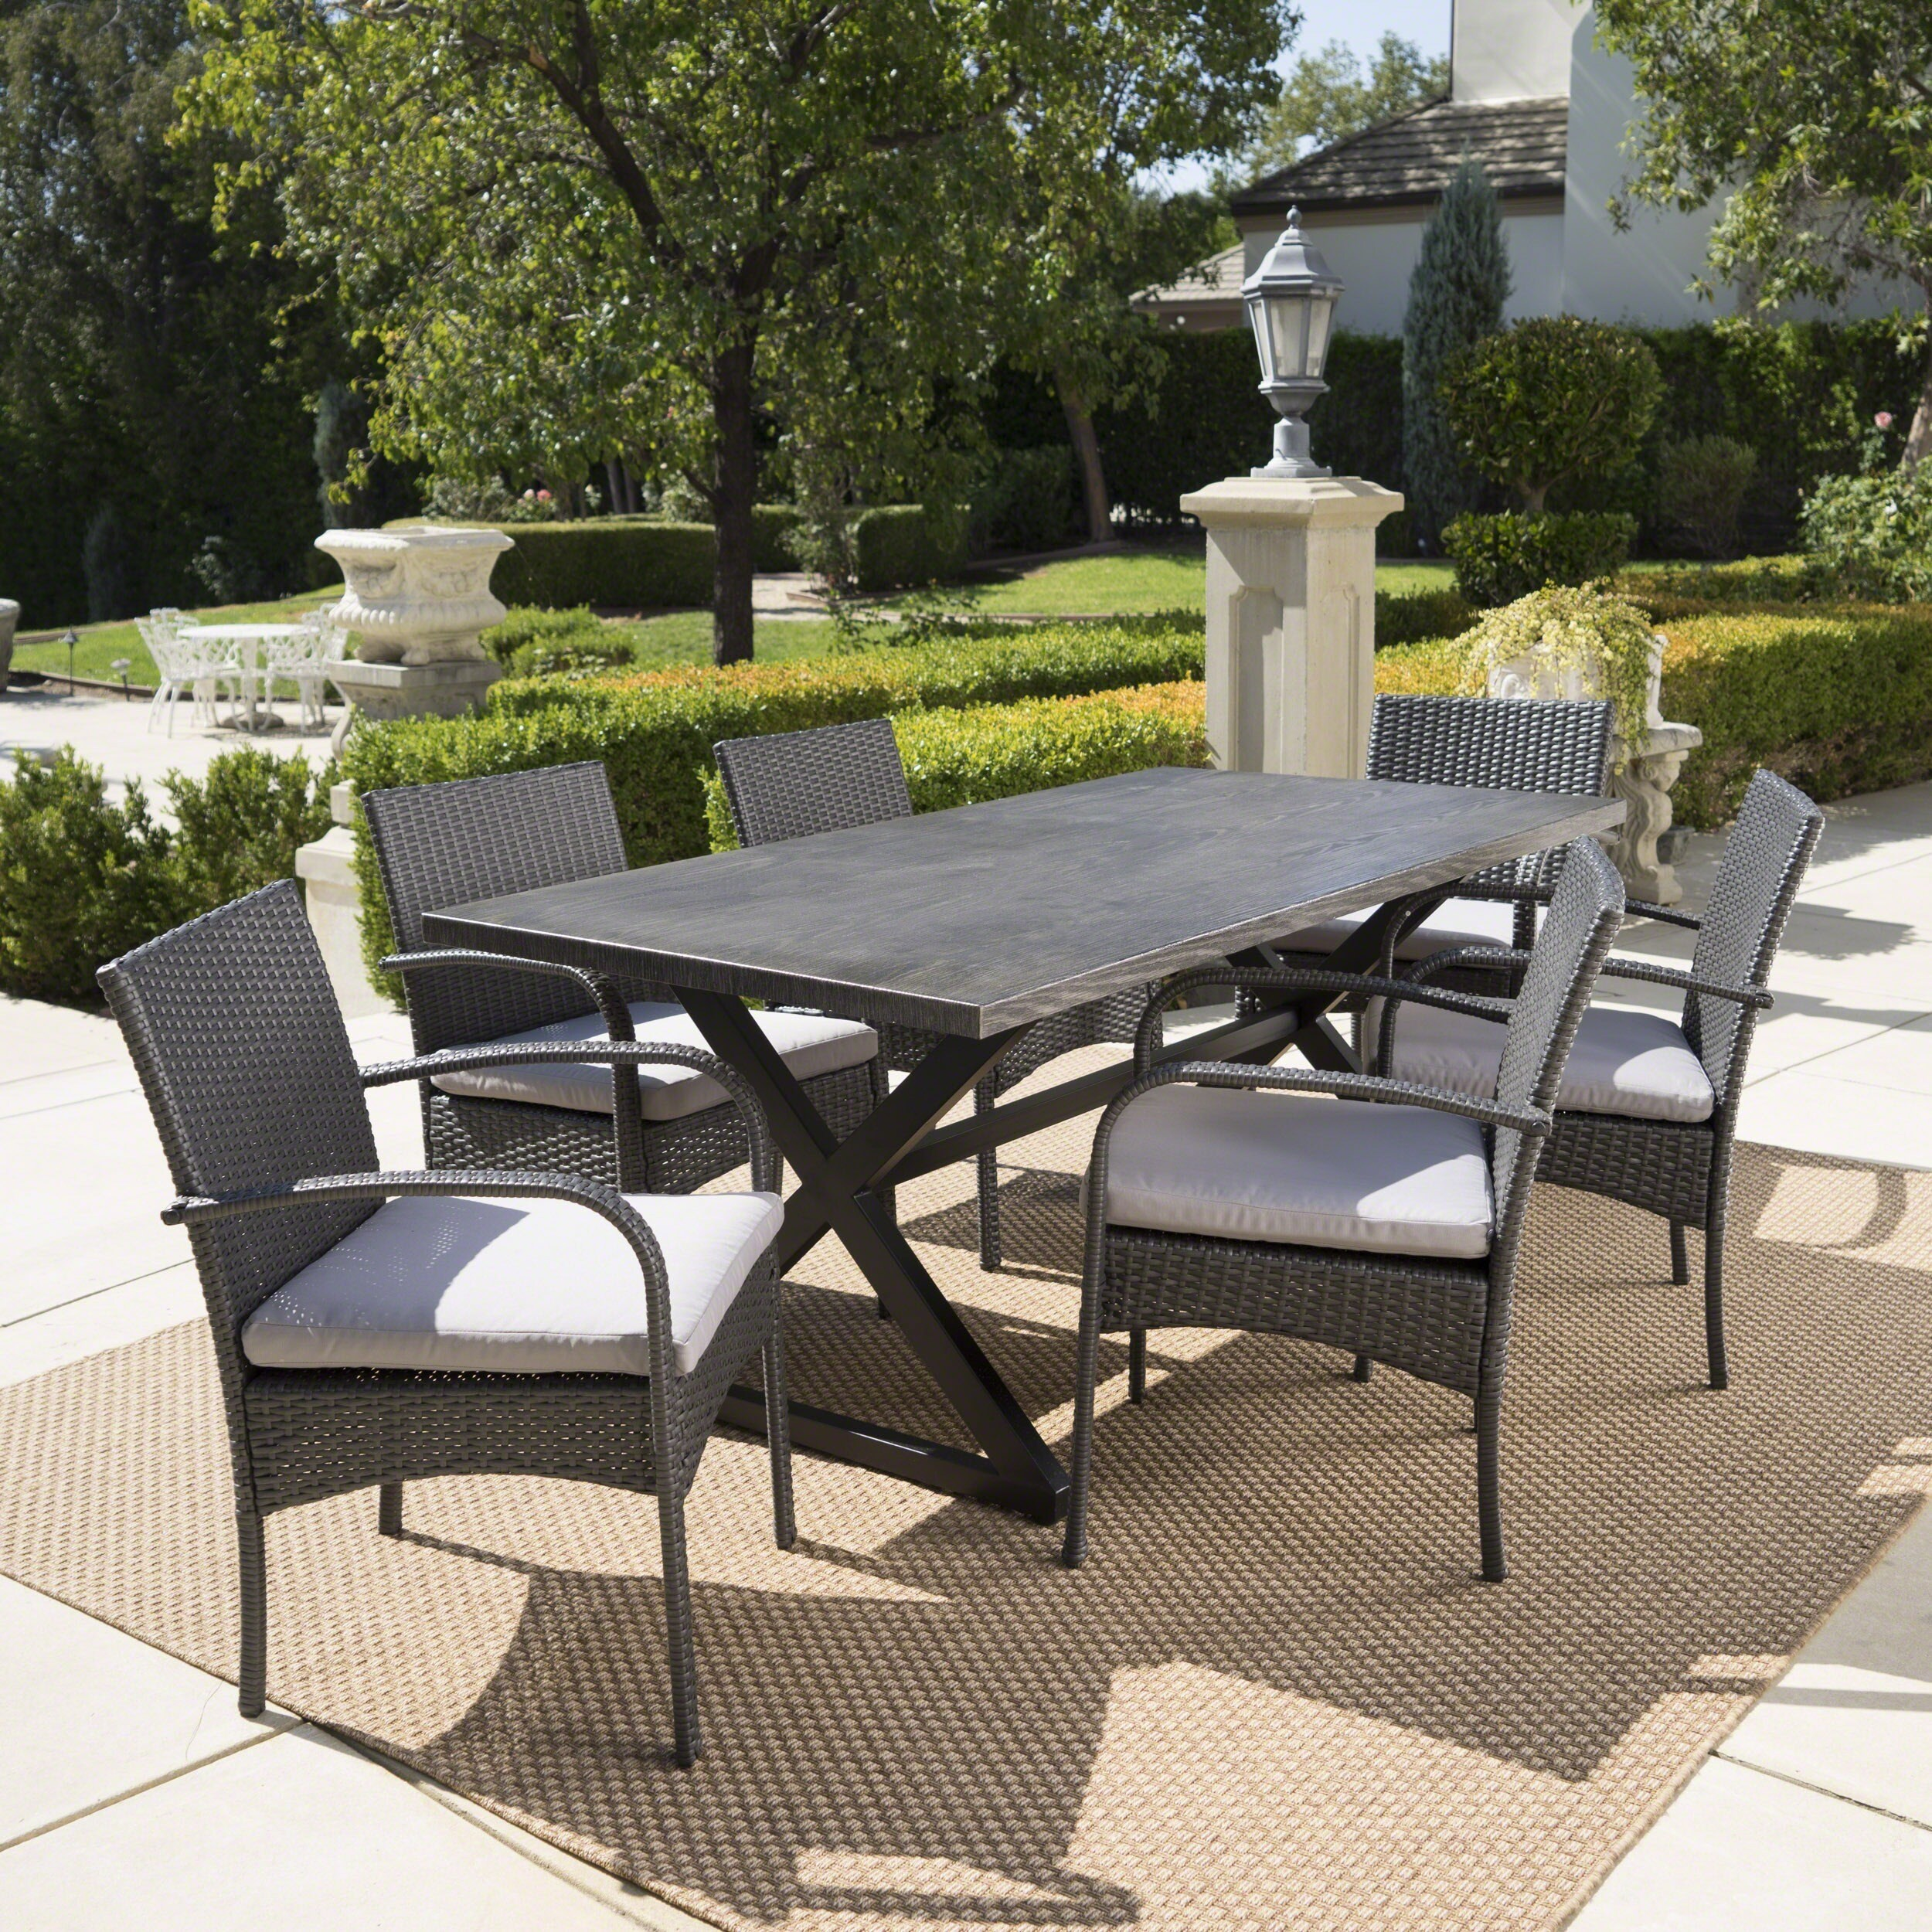 Shop ashworth outdoor 7 piece rectangular wicker aluminum dining set with cushions by christopher knight home on sale free shipping today overstock